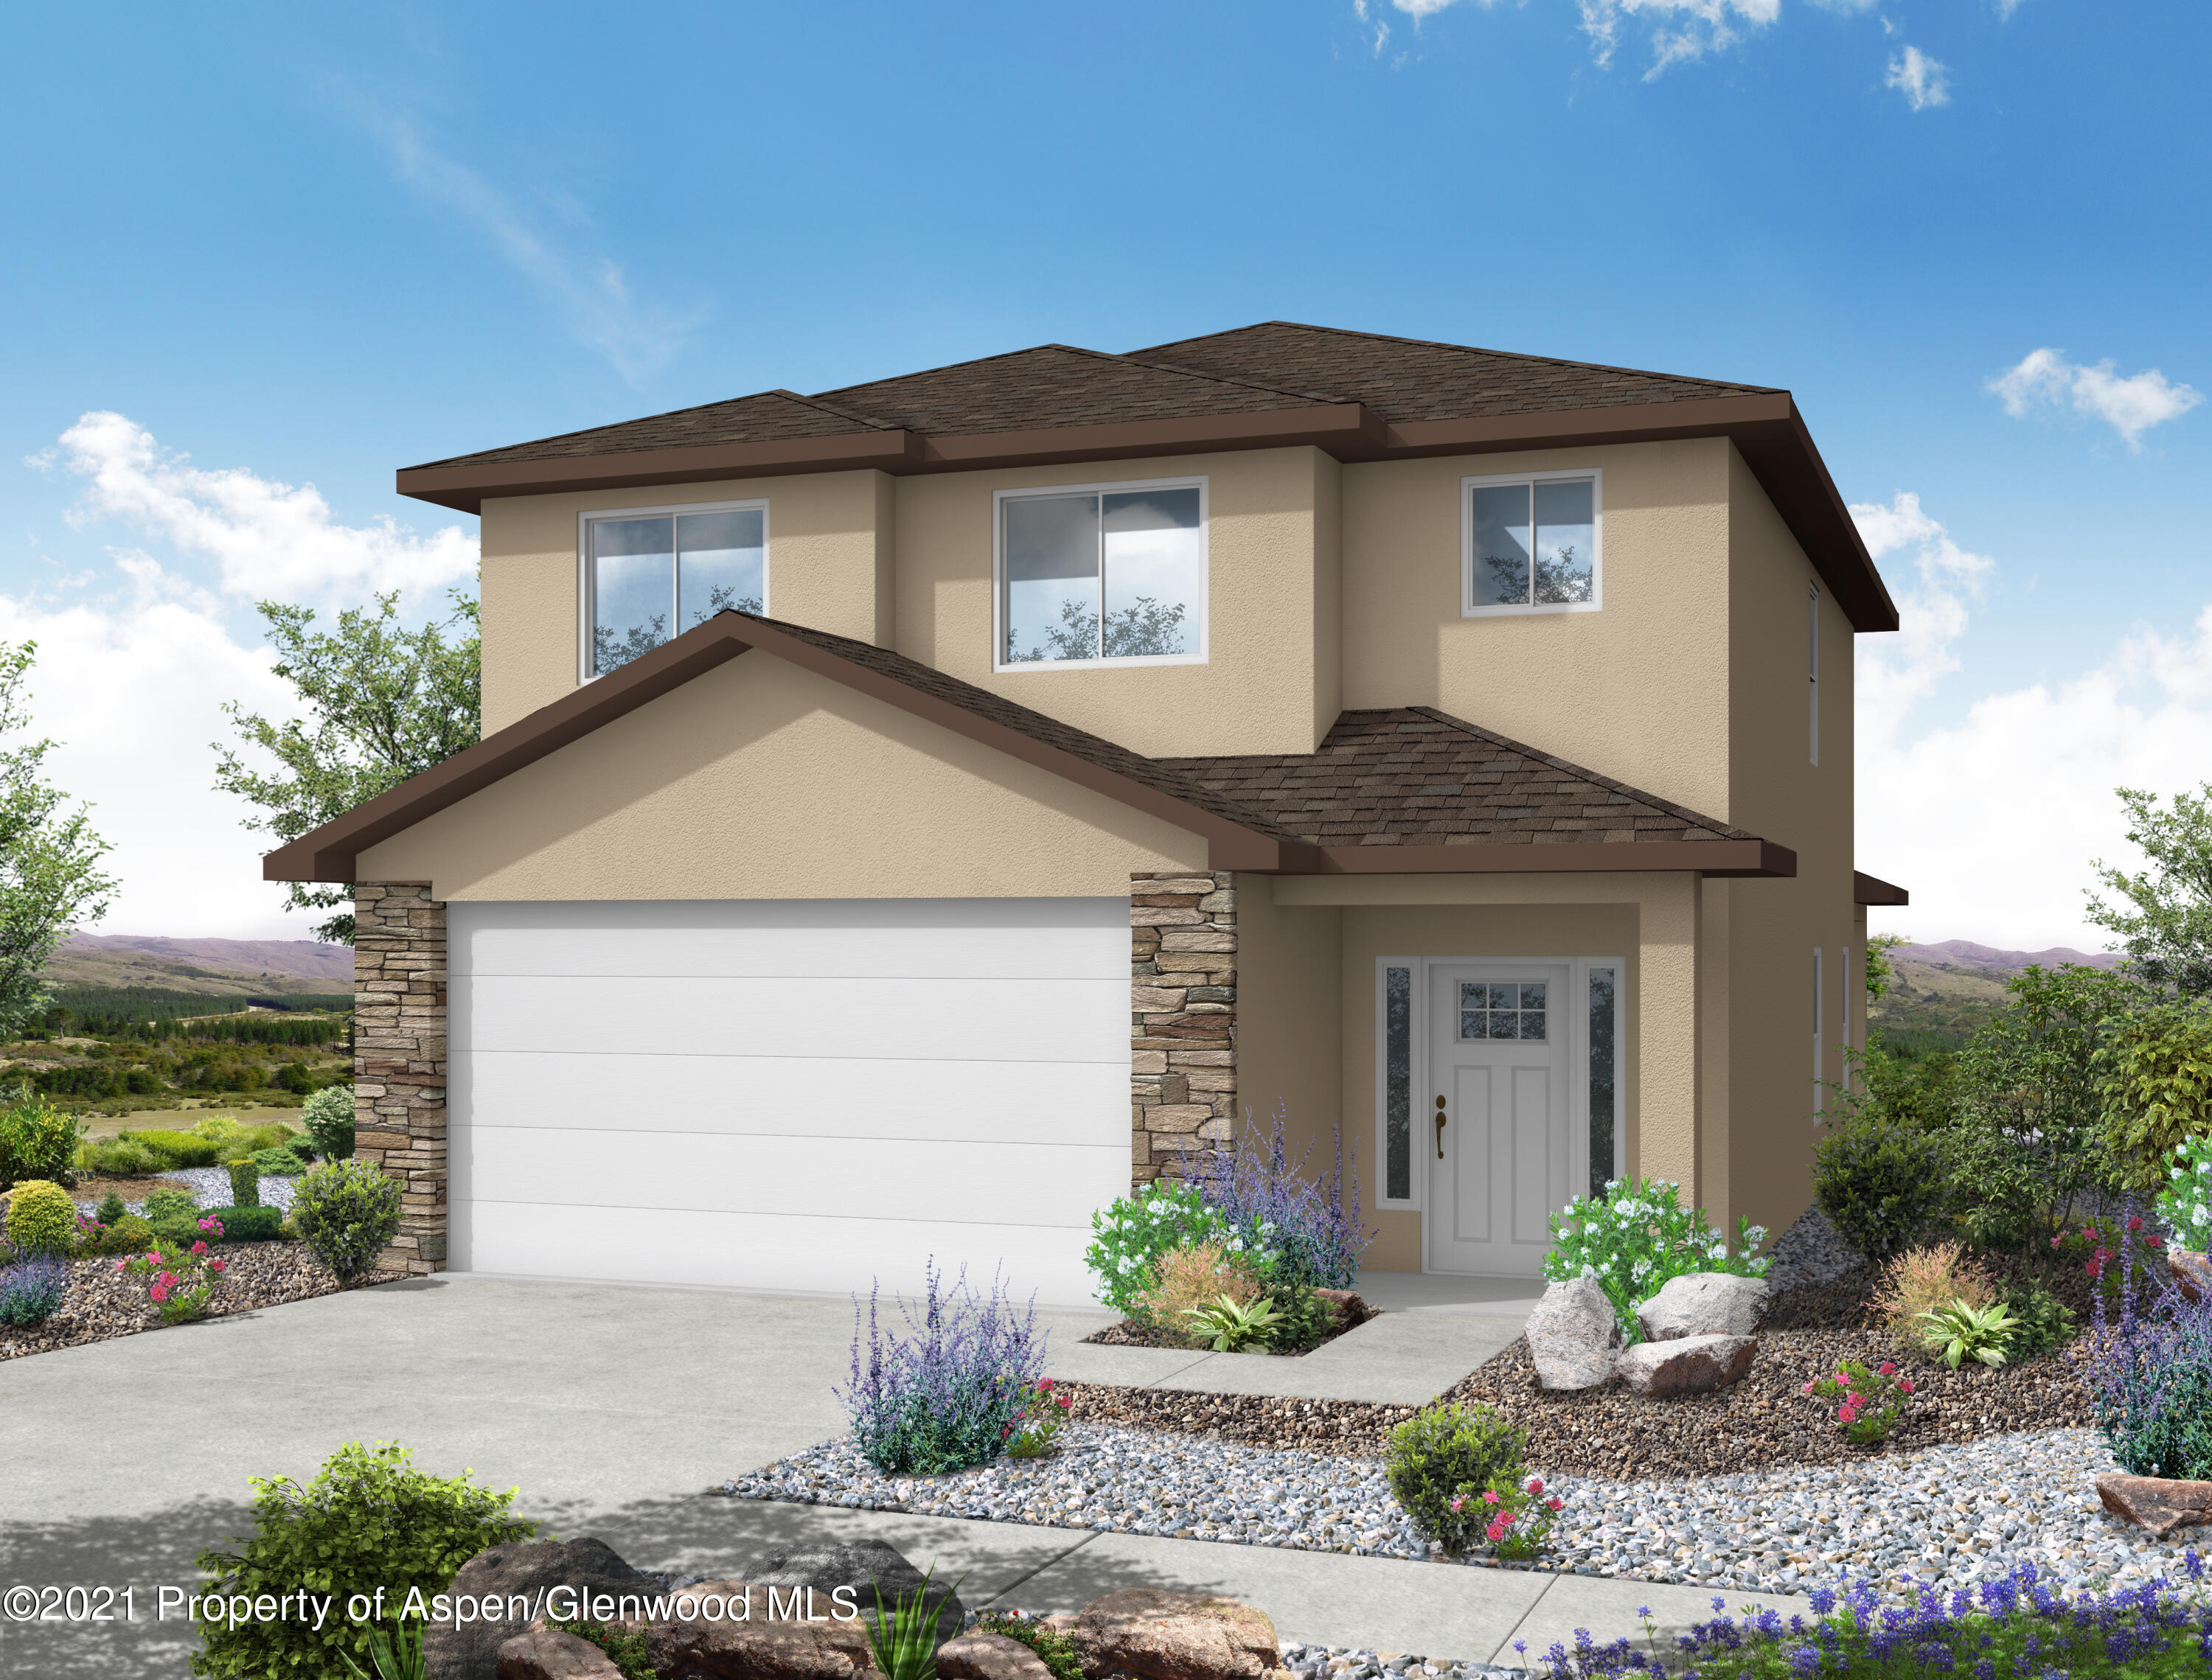 Make this four bedroom NEW CONSTRUCTION in the Promontory at Graham Mesa Subdivision home sweet home! This two story floor plan conveniently features all four bedrooms and laundry room upstairs, with the kitchen, living room, dining room, and a half bathroom on the main level. You'll enjoy a spacious en-suite master, complete with a double sink vanity and a generously sized walk in closet. Ideally located close to town and schools, this home checks all the boxes!